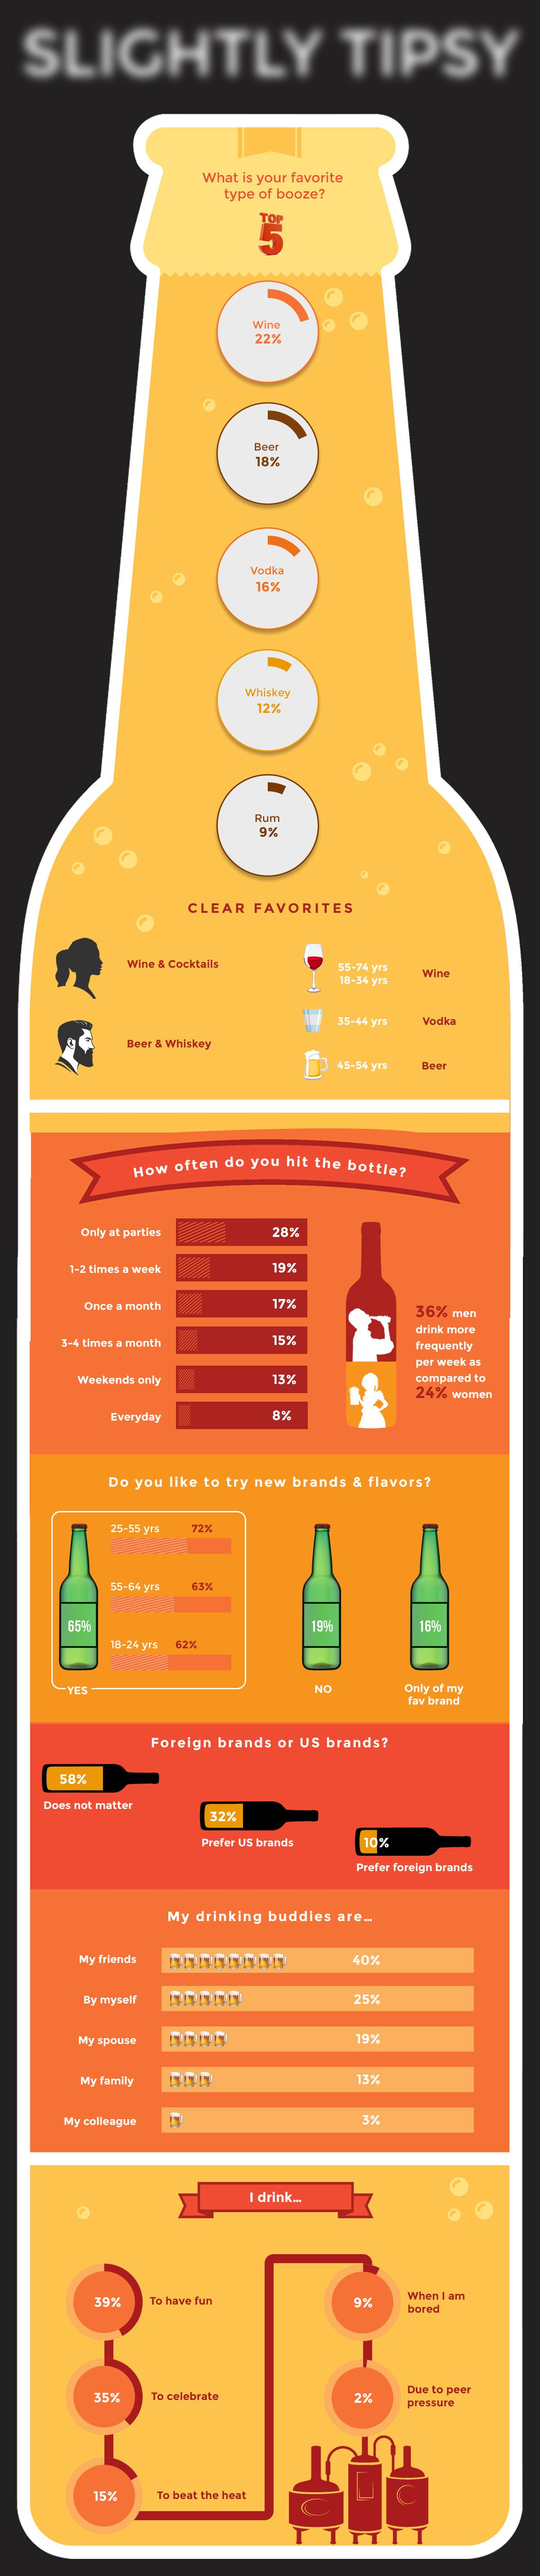 US Alcohol preferences